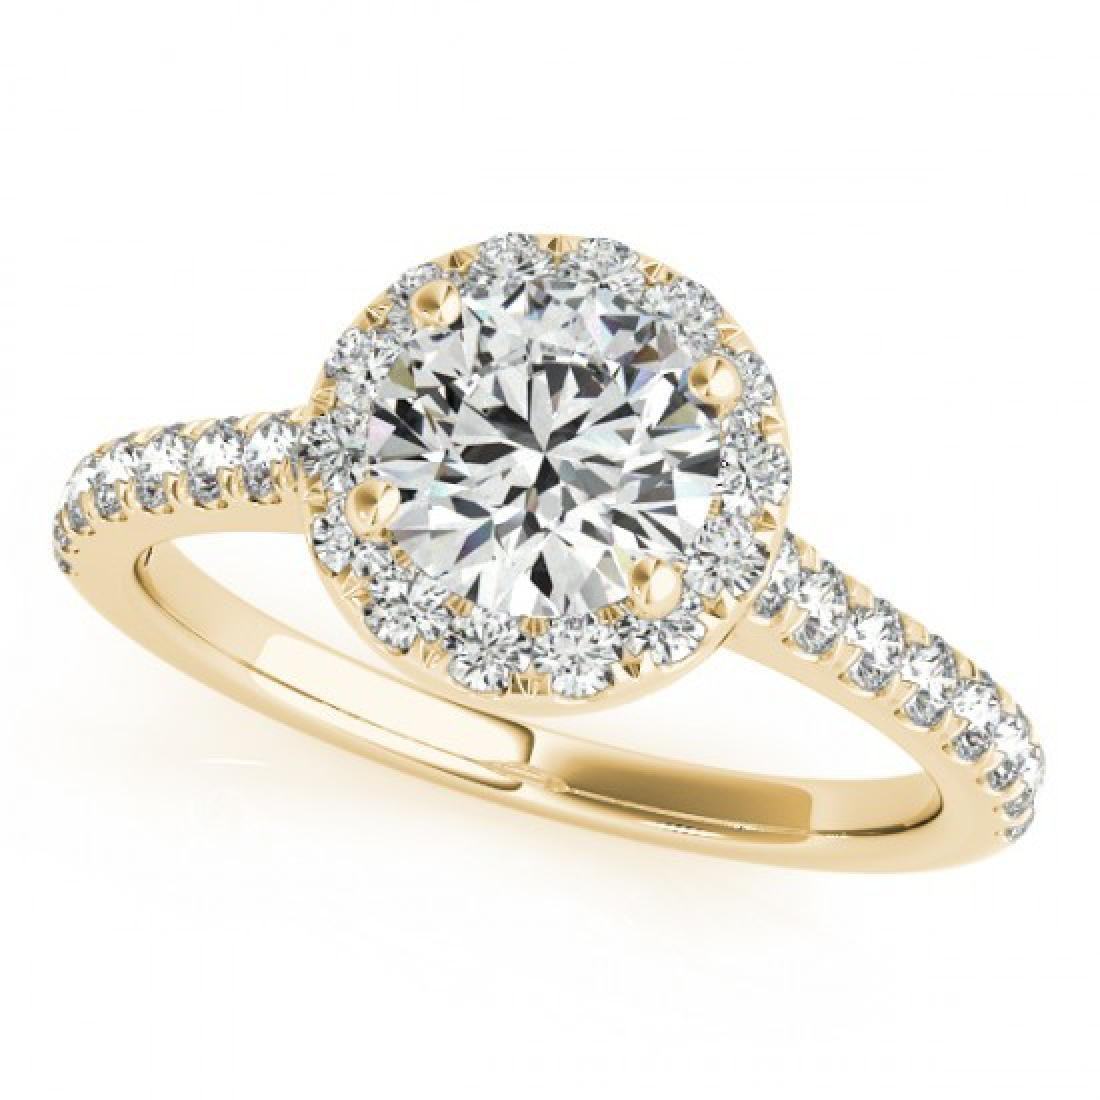 1.4 CTW Certified VS/SI Diamond Solitaire Halo Ring 18K